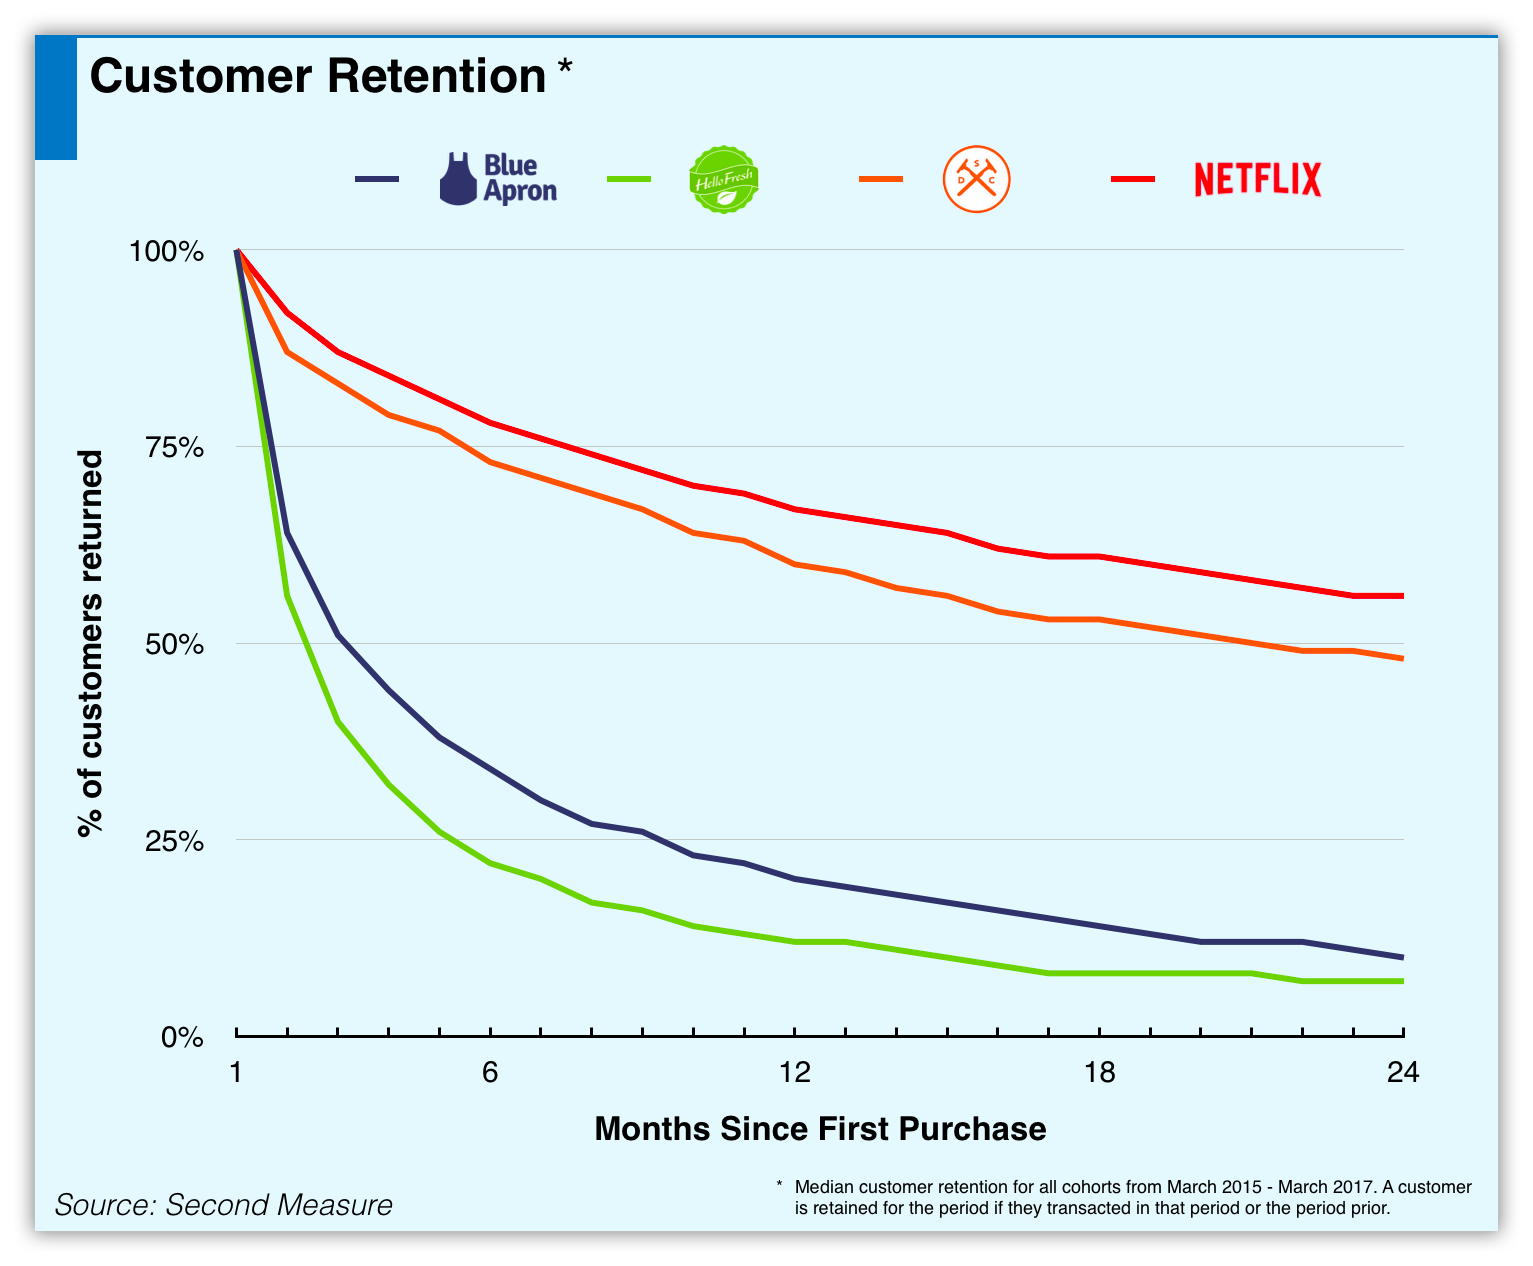 Blue Apron customer retention